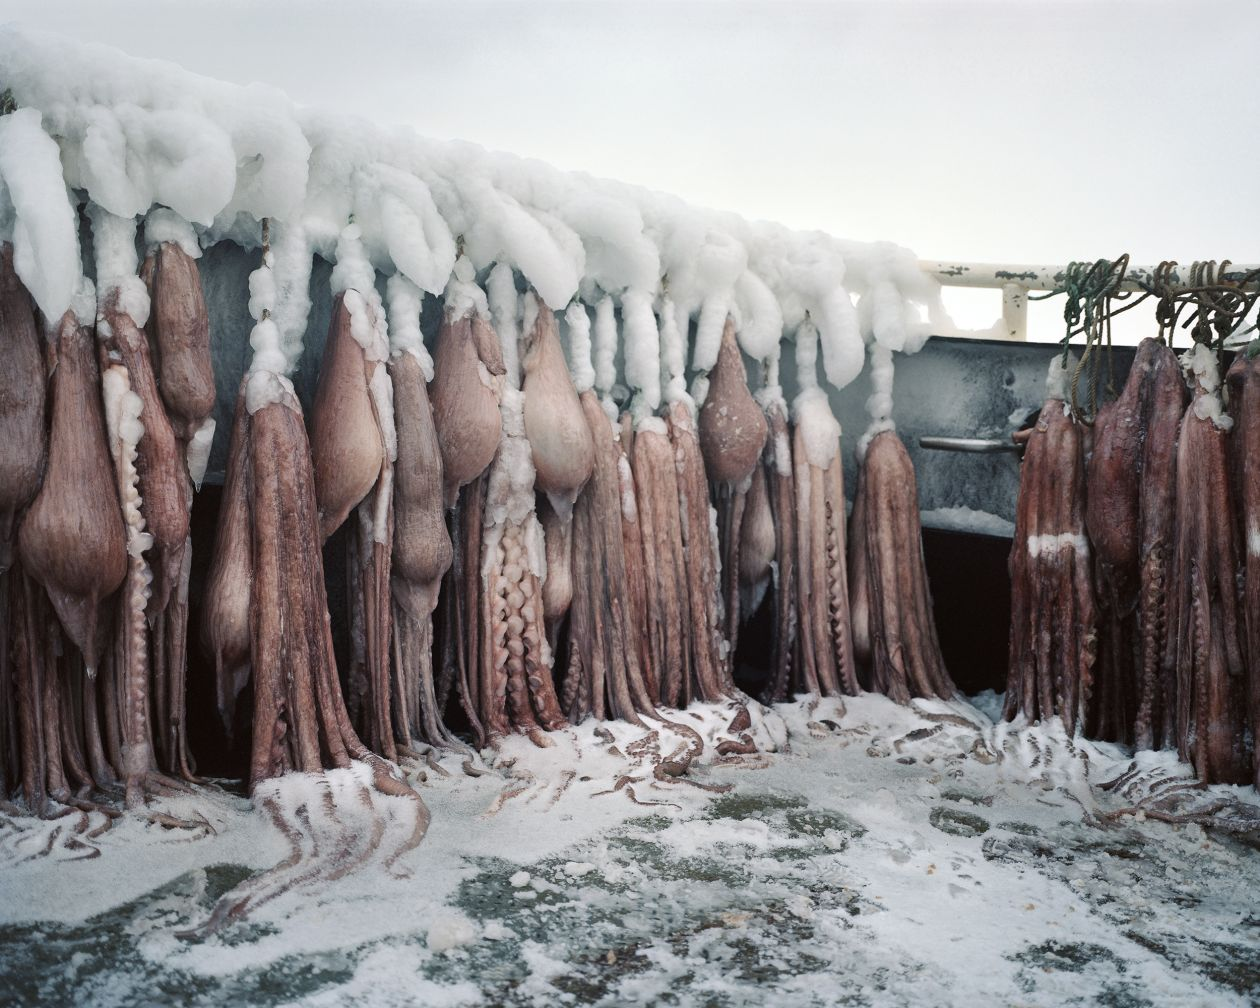 Frozen Octopus (2010) by Corey Arnold